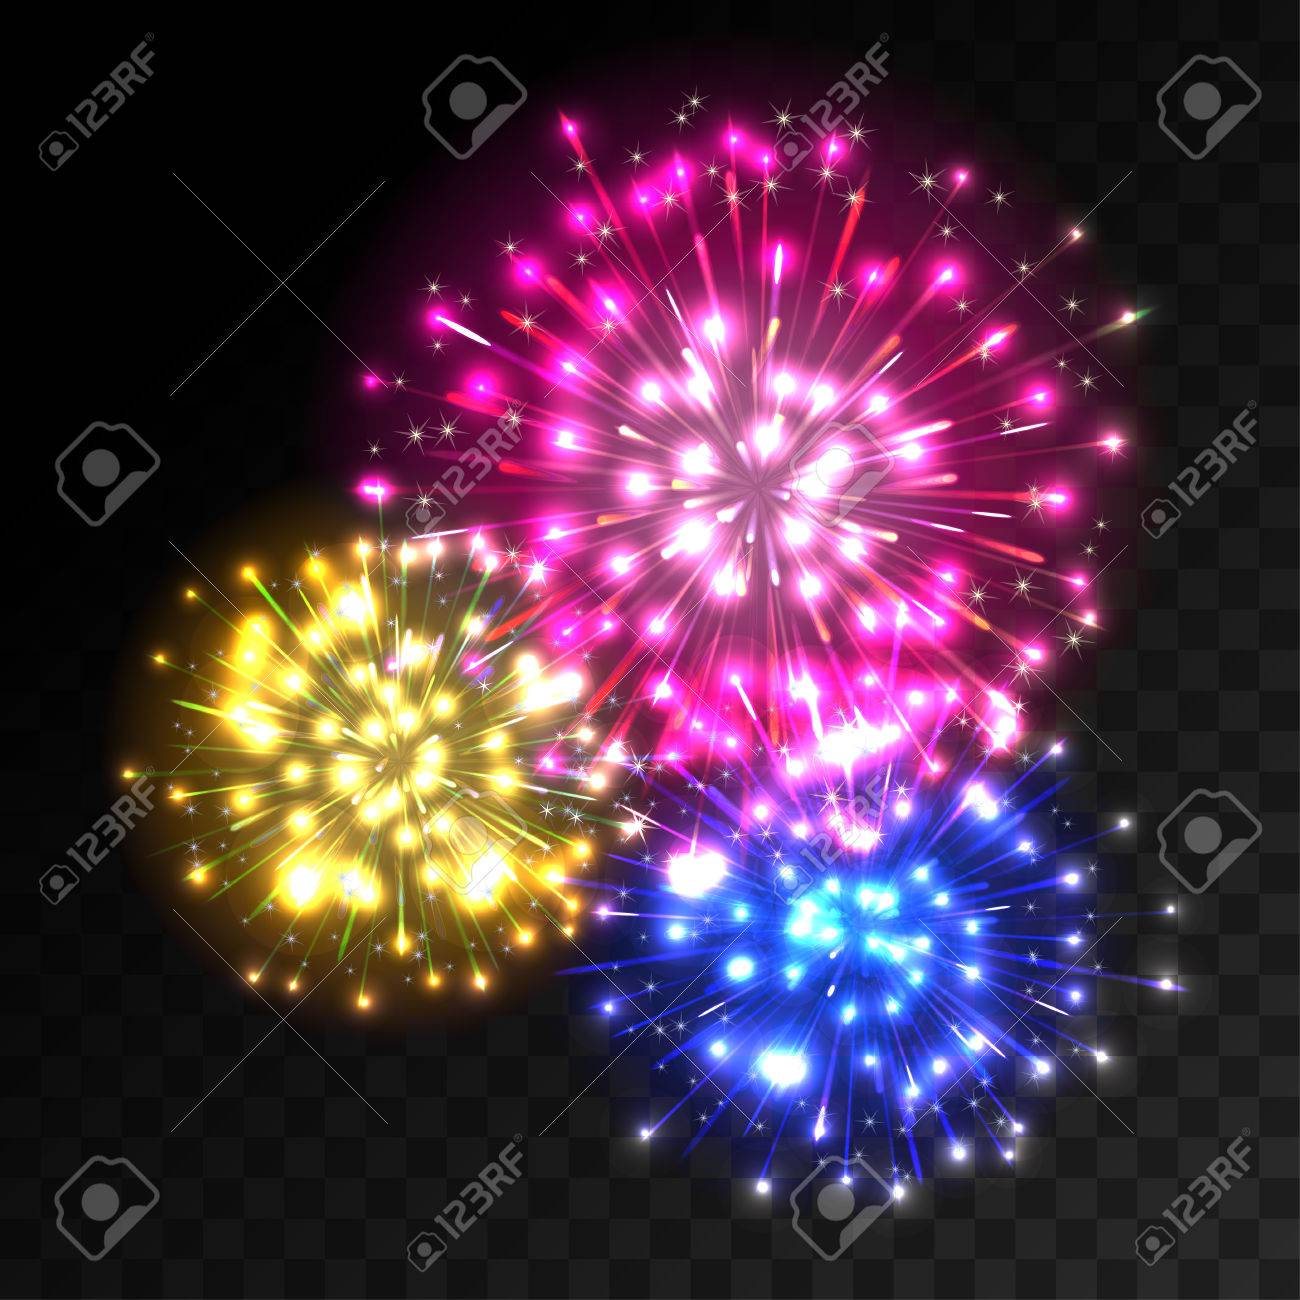 Colorful Fireworks Explosion On Transparent Background  Blue     Colorful fireworks explosion on transparent background  Blue  pink and  yellow lights  New Year